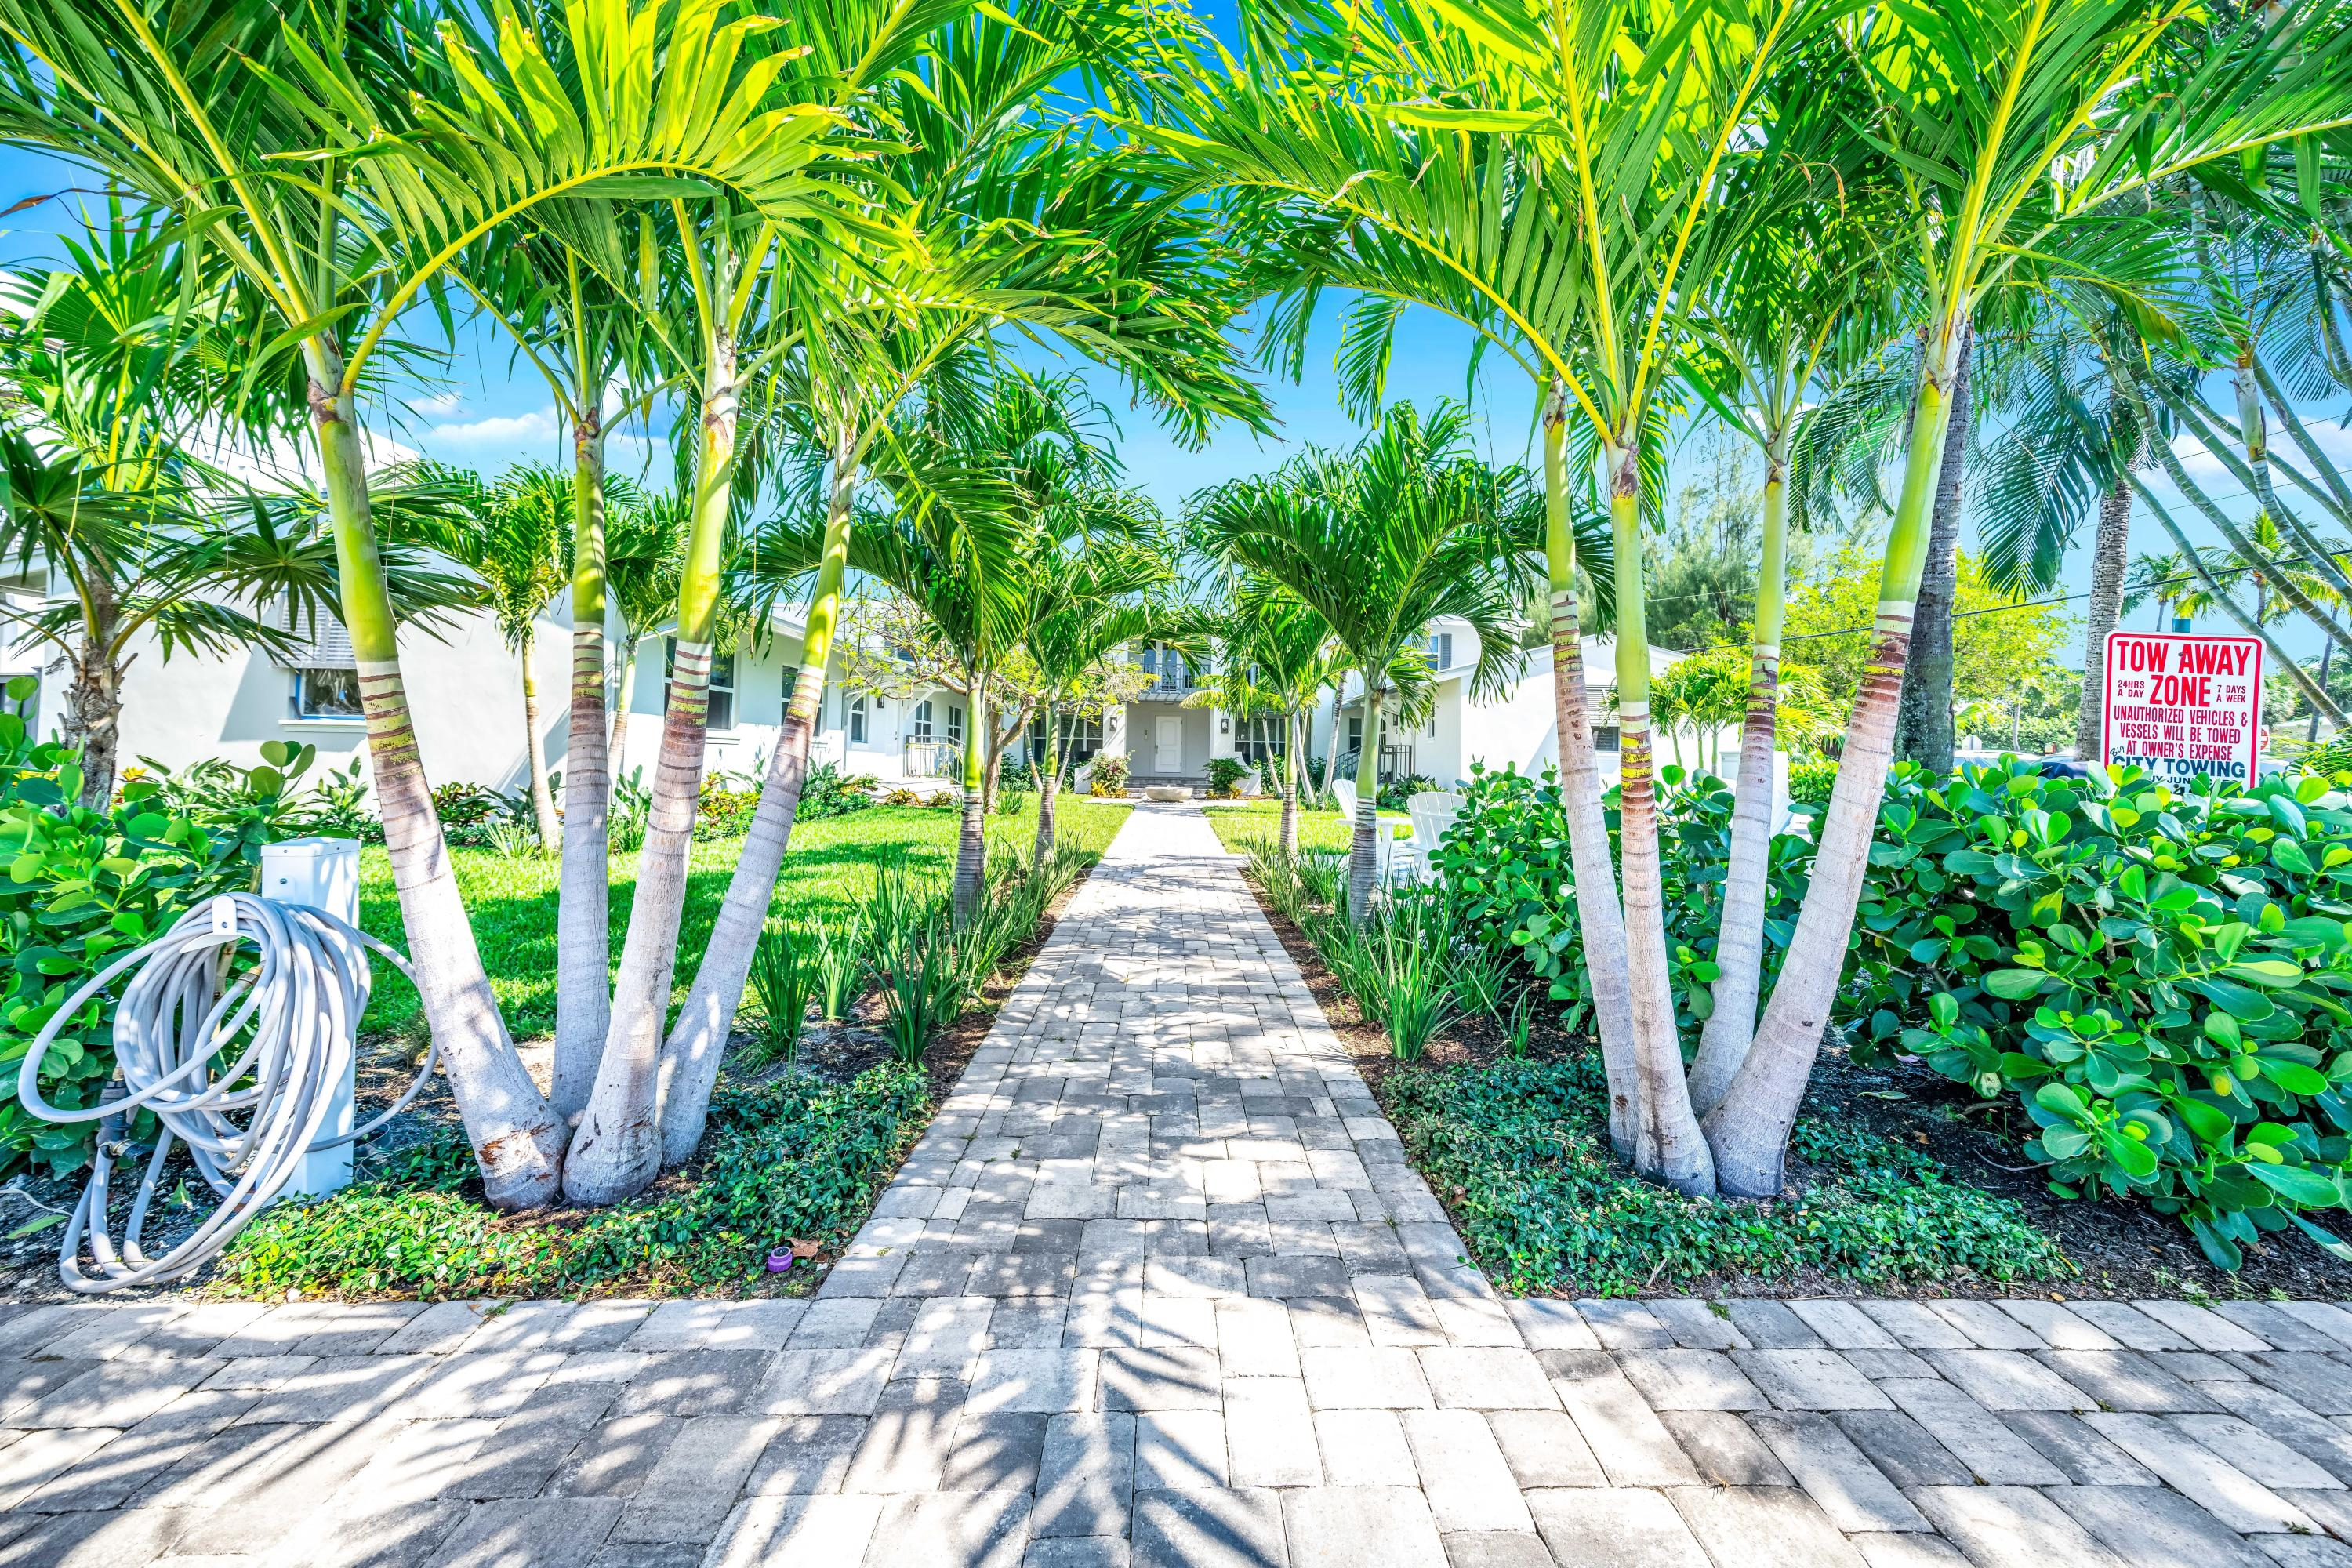 Vacation full time in this perfect beach side getaway. Lives like a single family home, with private patio for bbq, great outdoor space to enjoy. Building has undergone a million dollar plus renovation, everything is new! Impact windows & doors, new AC and ducts, new electric room, meters & wiring, new plumbing under the building. Beautiful landscaping and patios. Unit is fully renovated with a cottage beach feel. New floors, appliances, bathrooms ready to move in. Just one block to Delray's beautiful beach, walk or bike to Atlantic Ave's restaurants and shops.